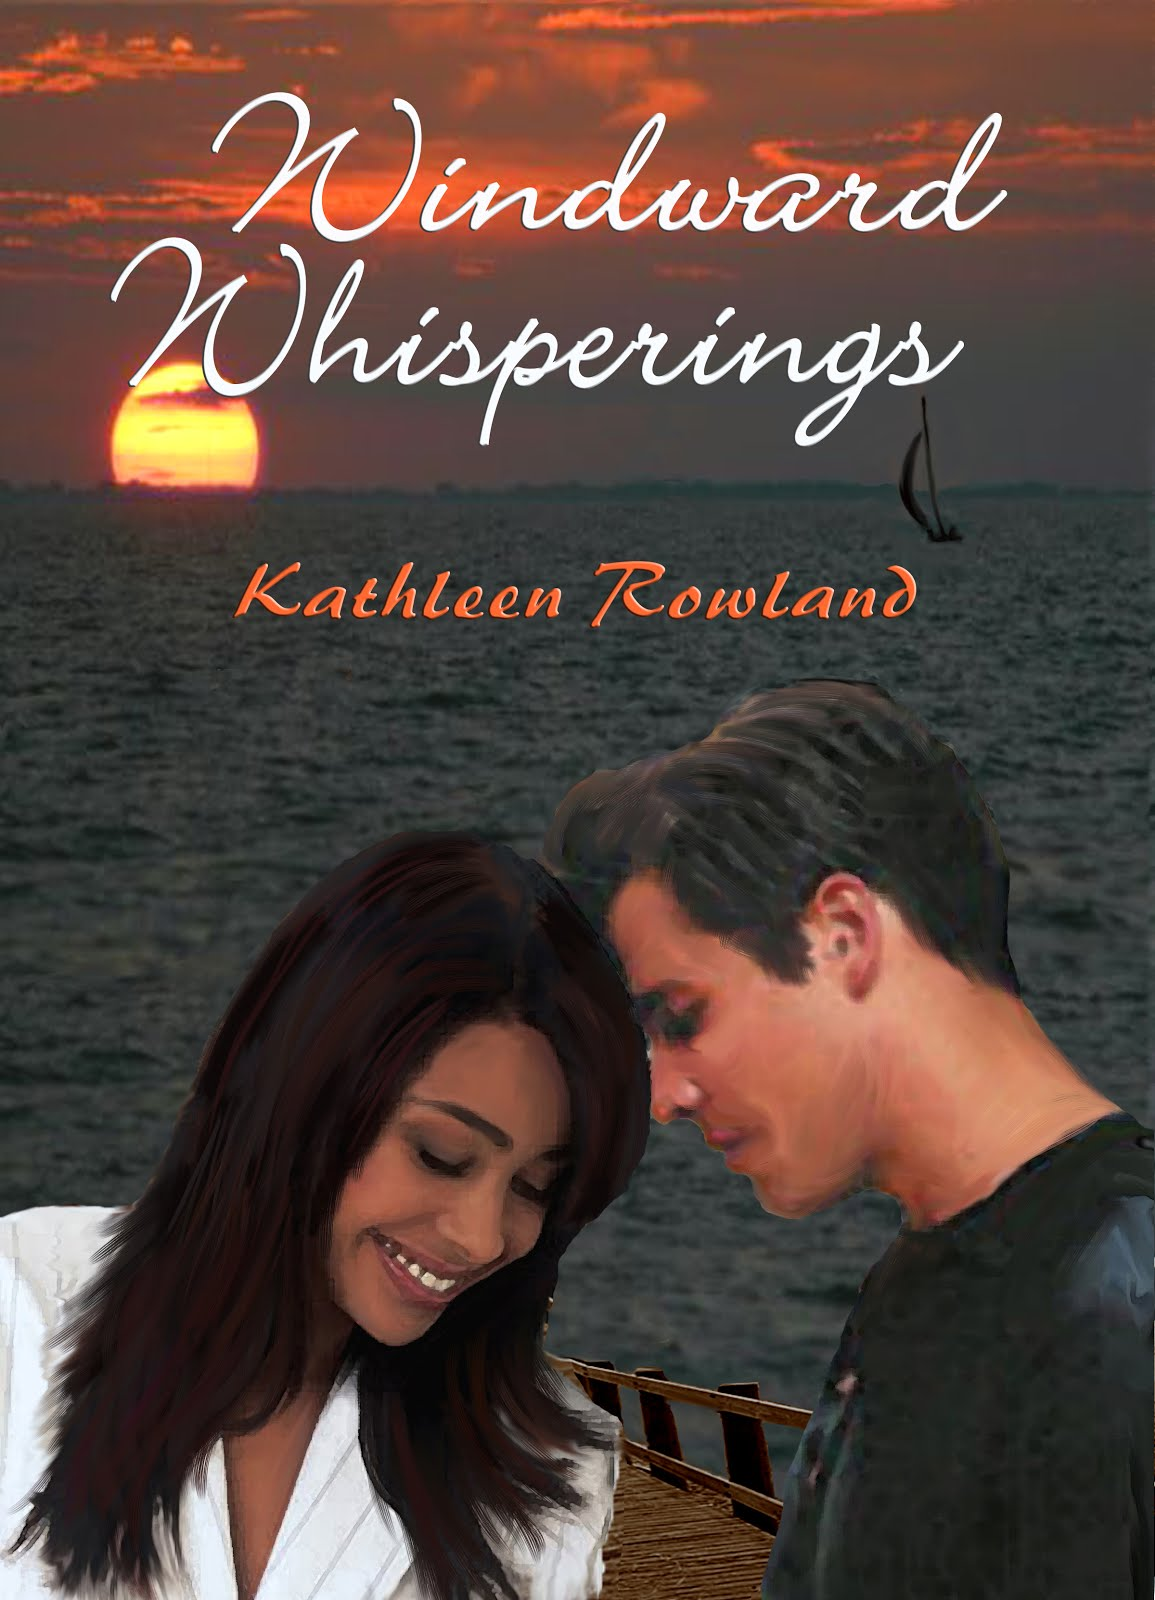 Windward Whisperings